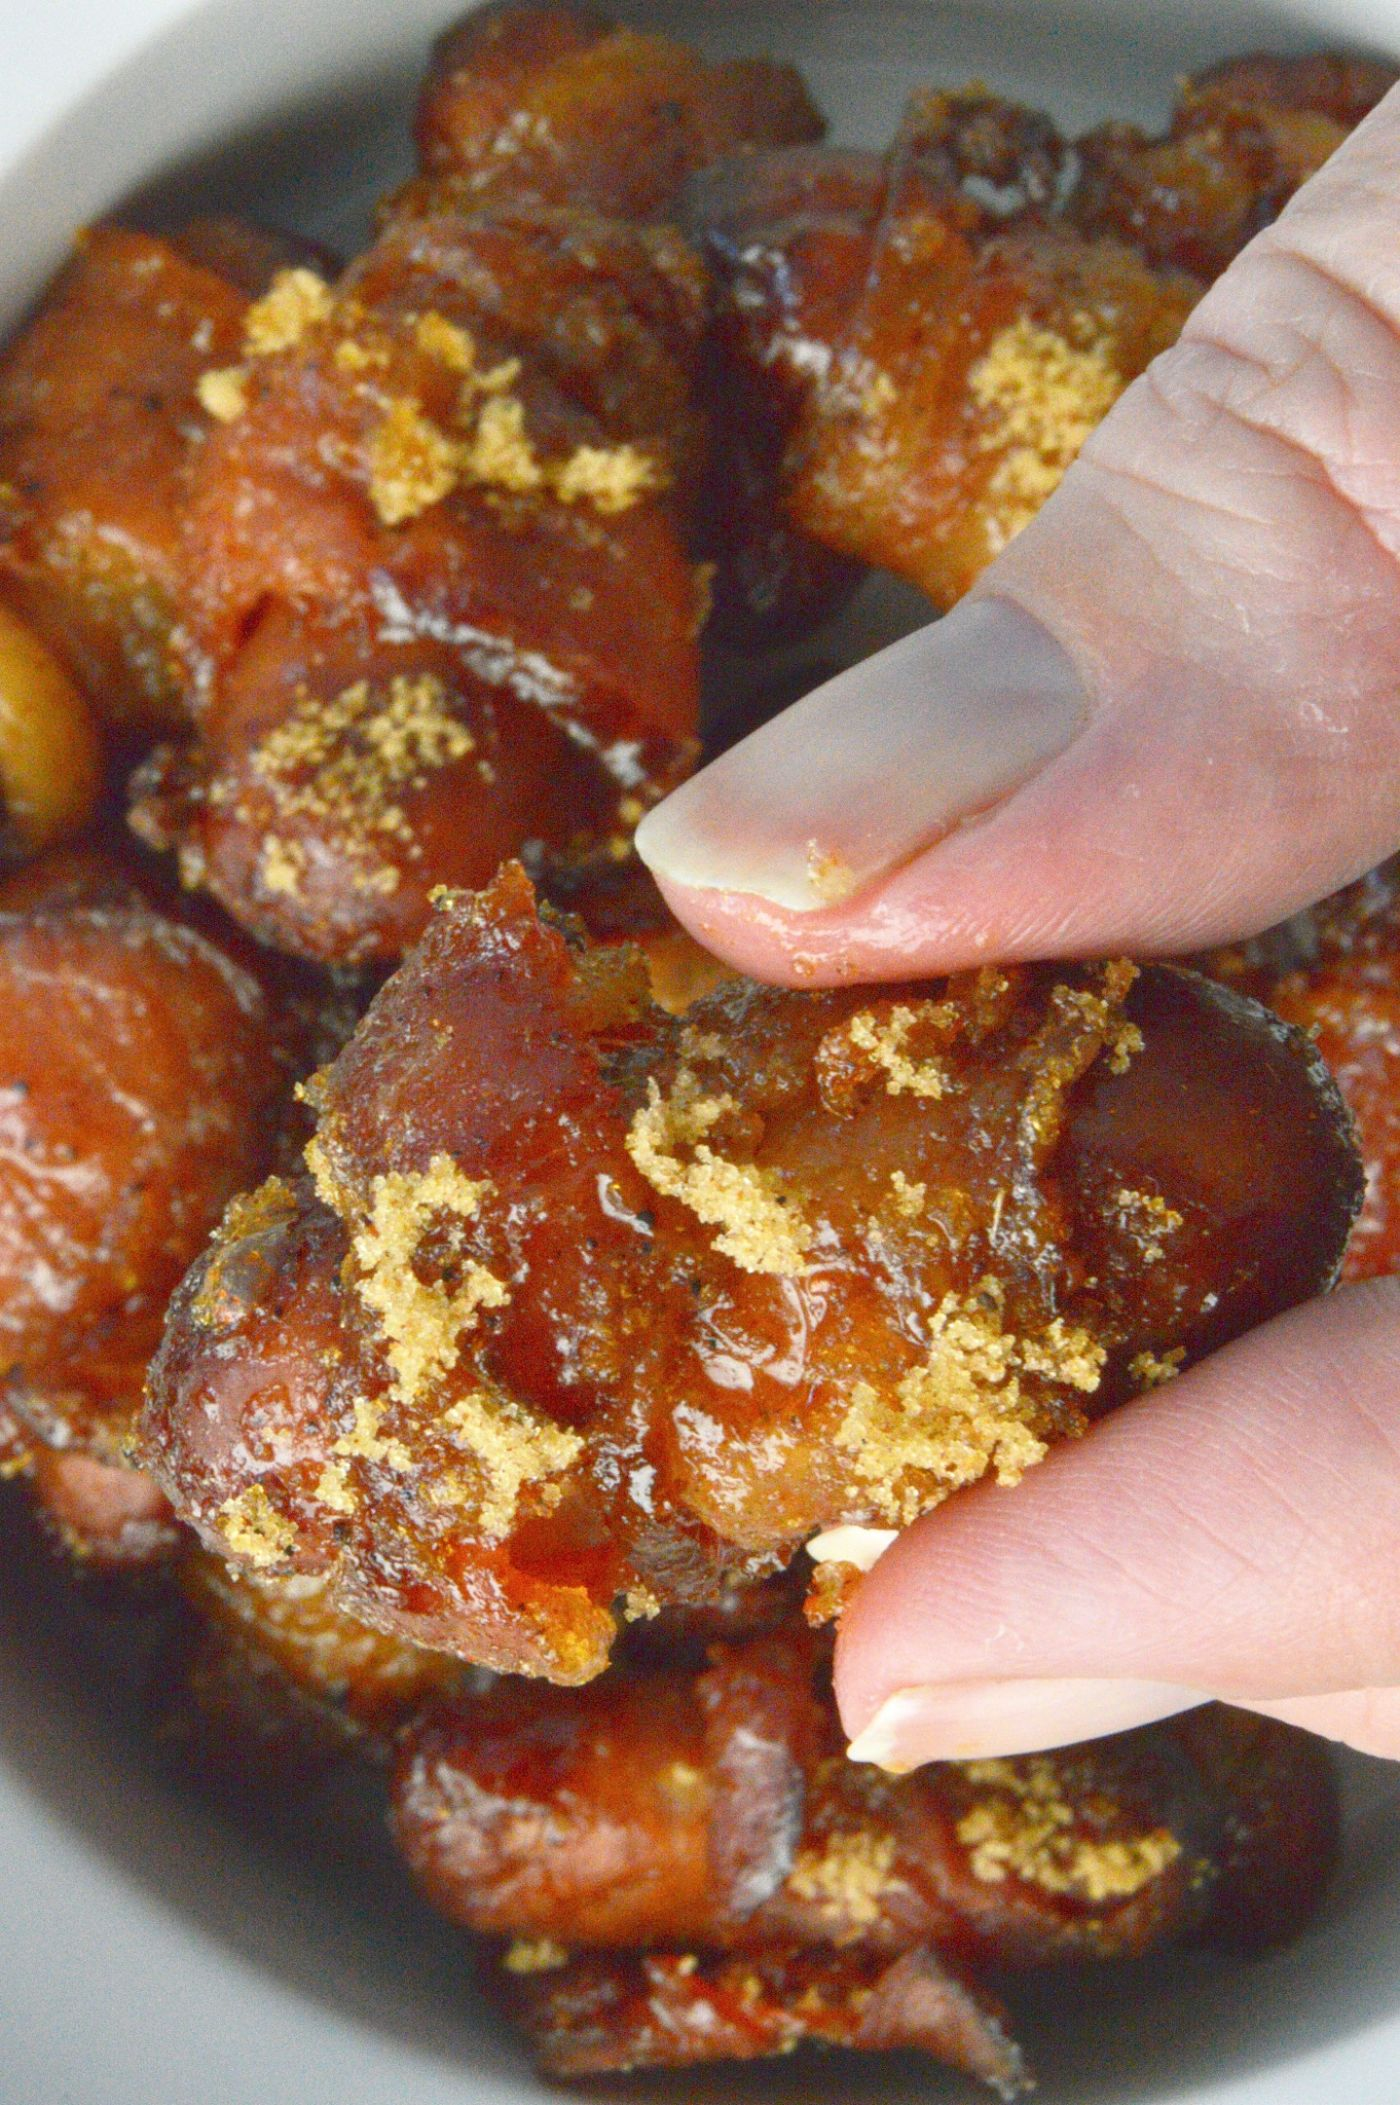 Holding a Spicy Sugar Bacon Smokies!! Crispy Bacon wrapped smokies are a bite sized treat that have a brown sugar coat that has a hint of spiciness! Perfect for game-day snacks or any casual cocktail party.